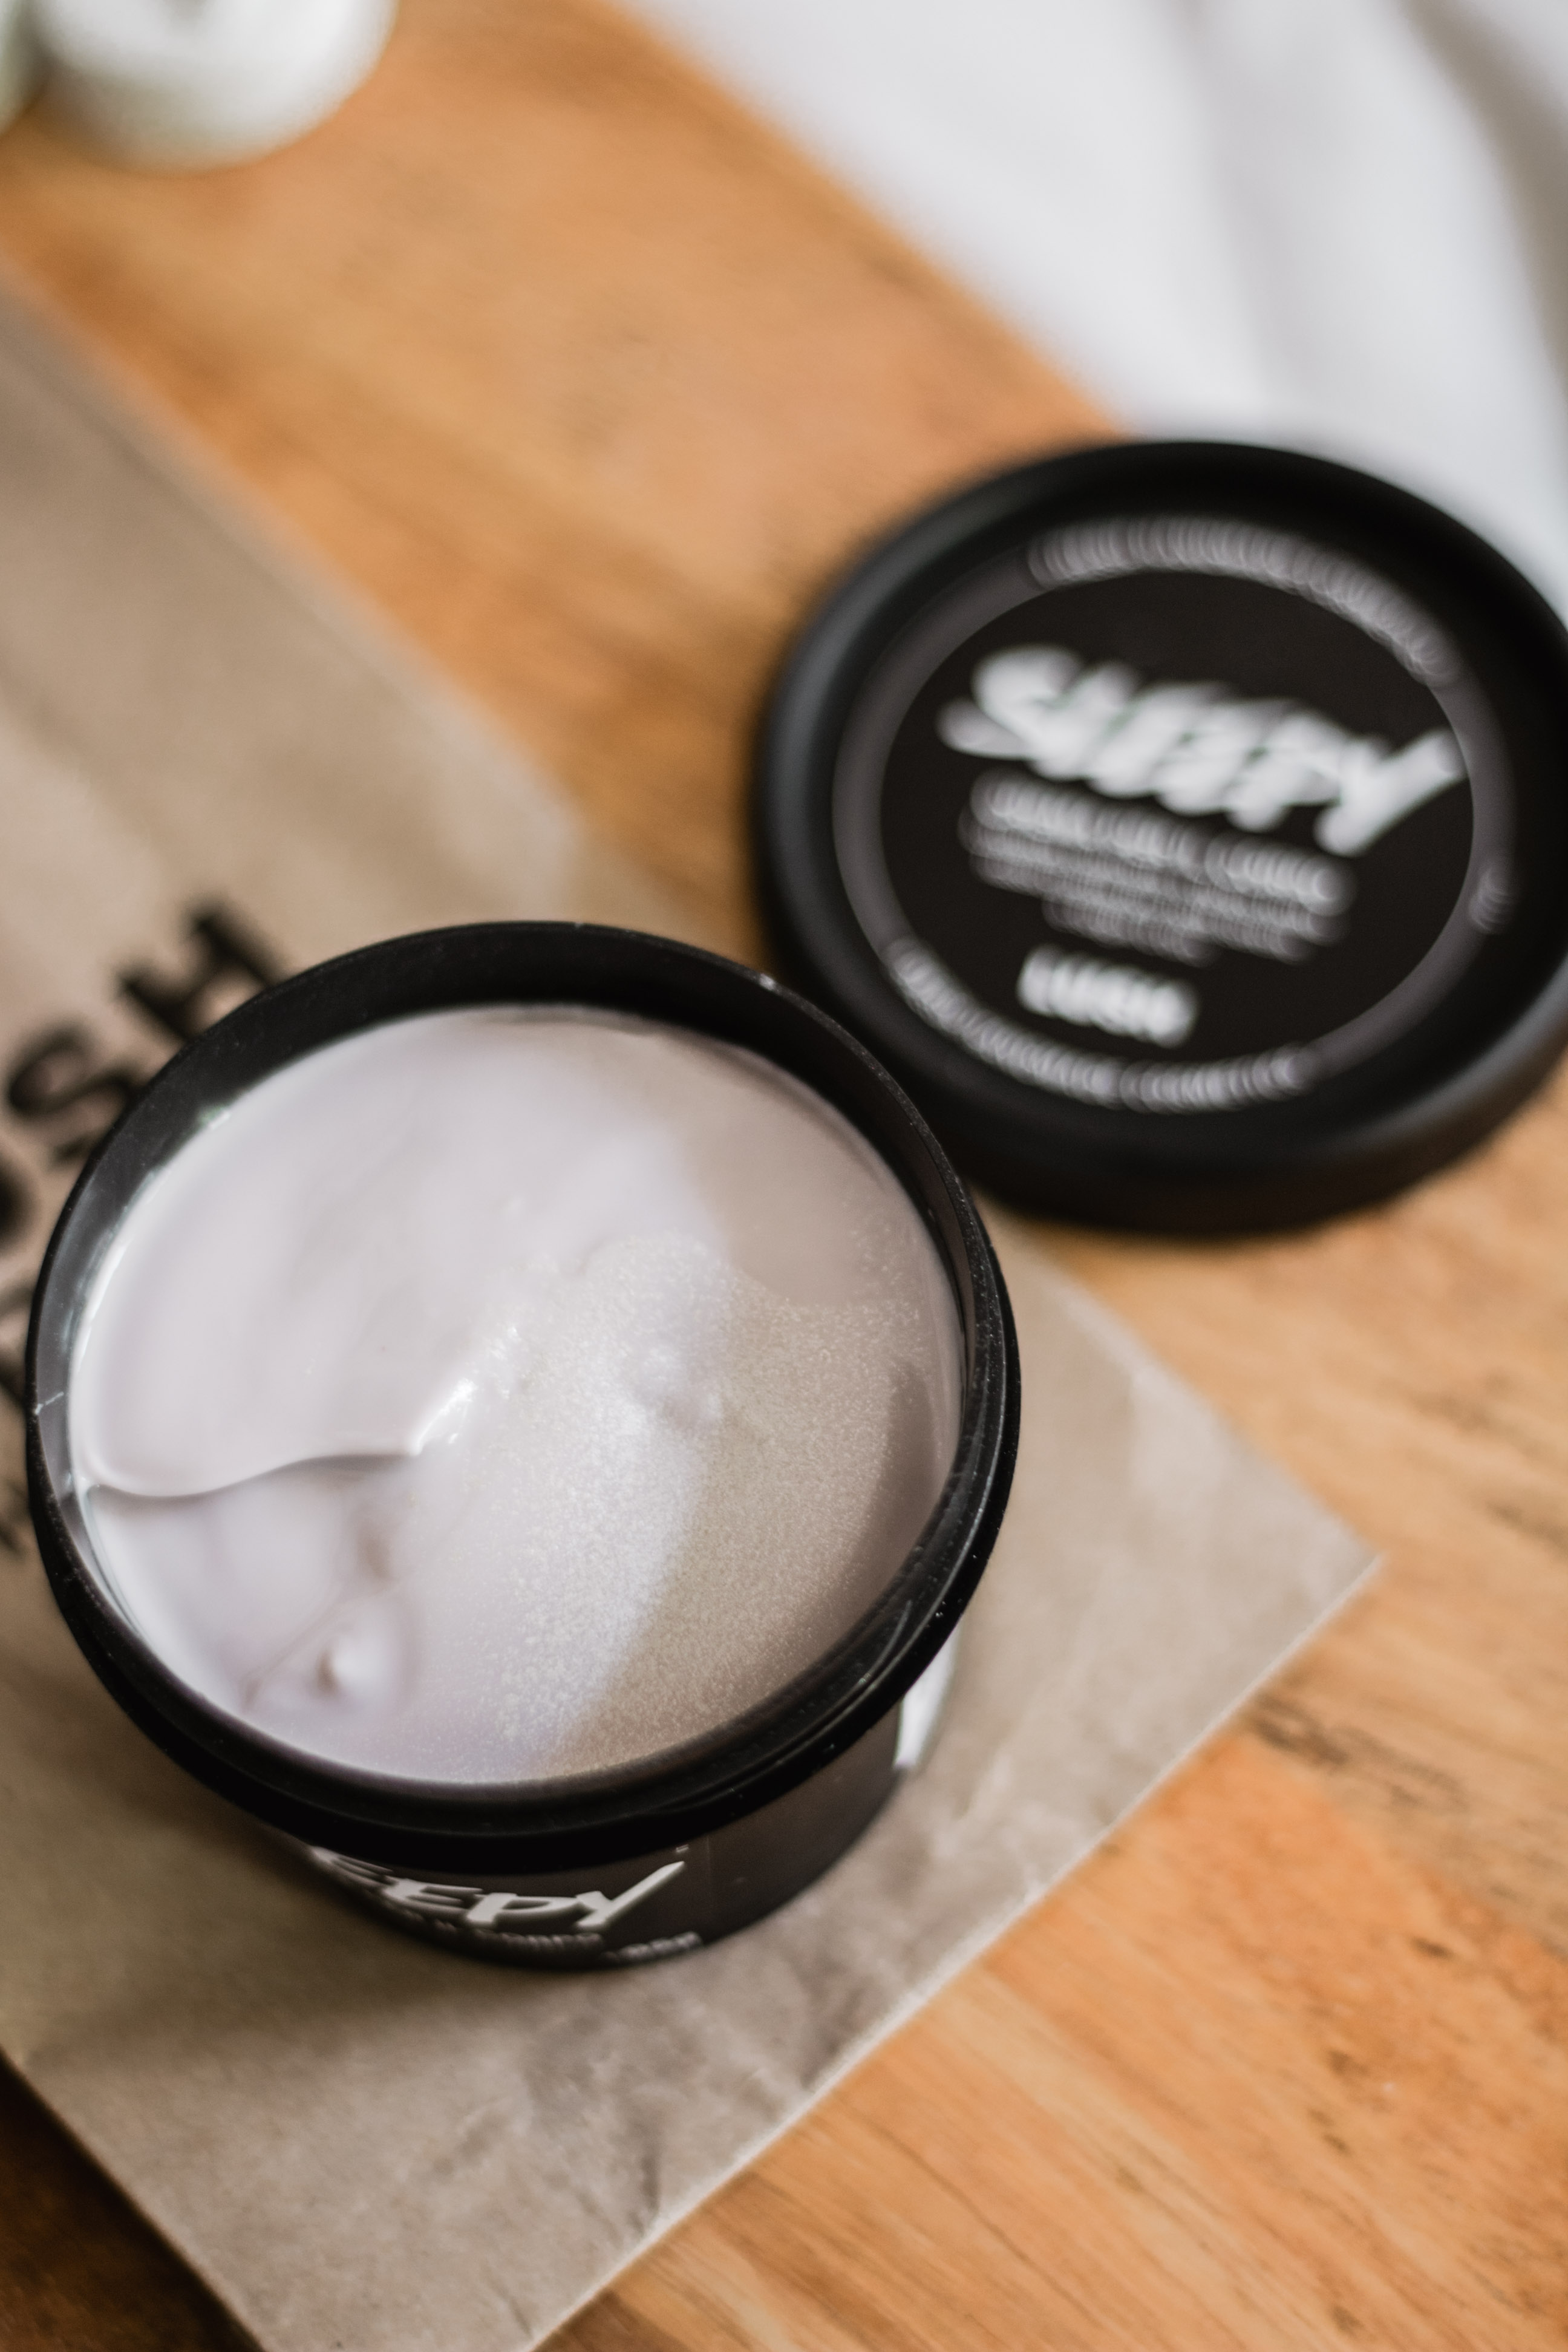 Lush Haul - Sleepy Body Lotion